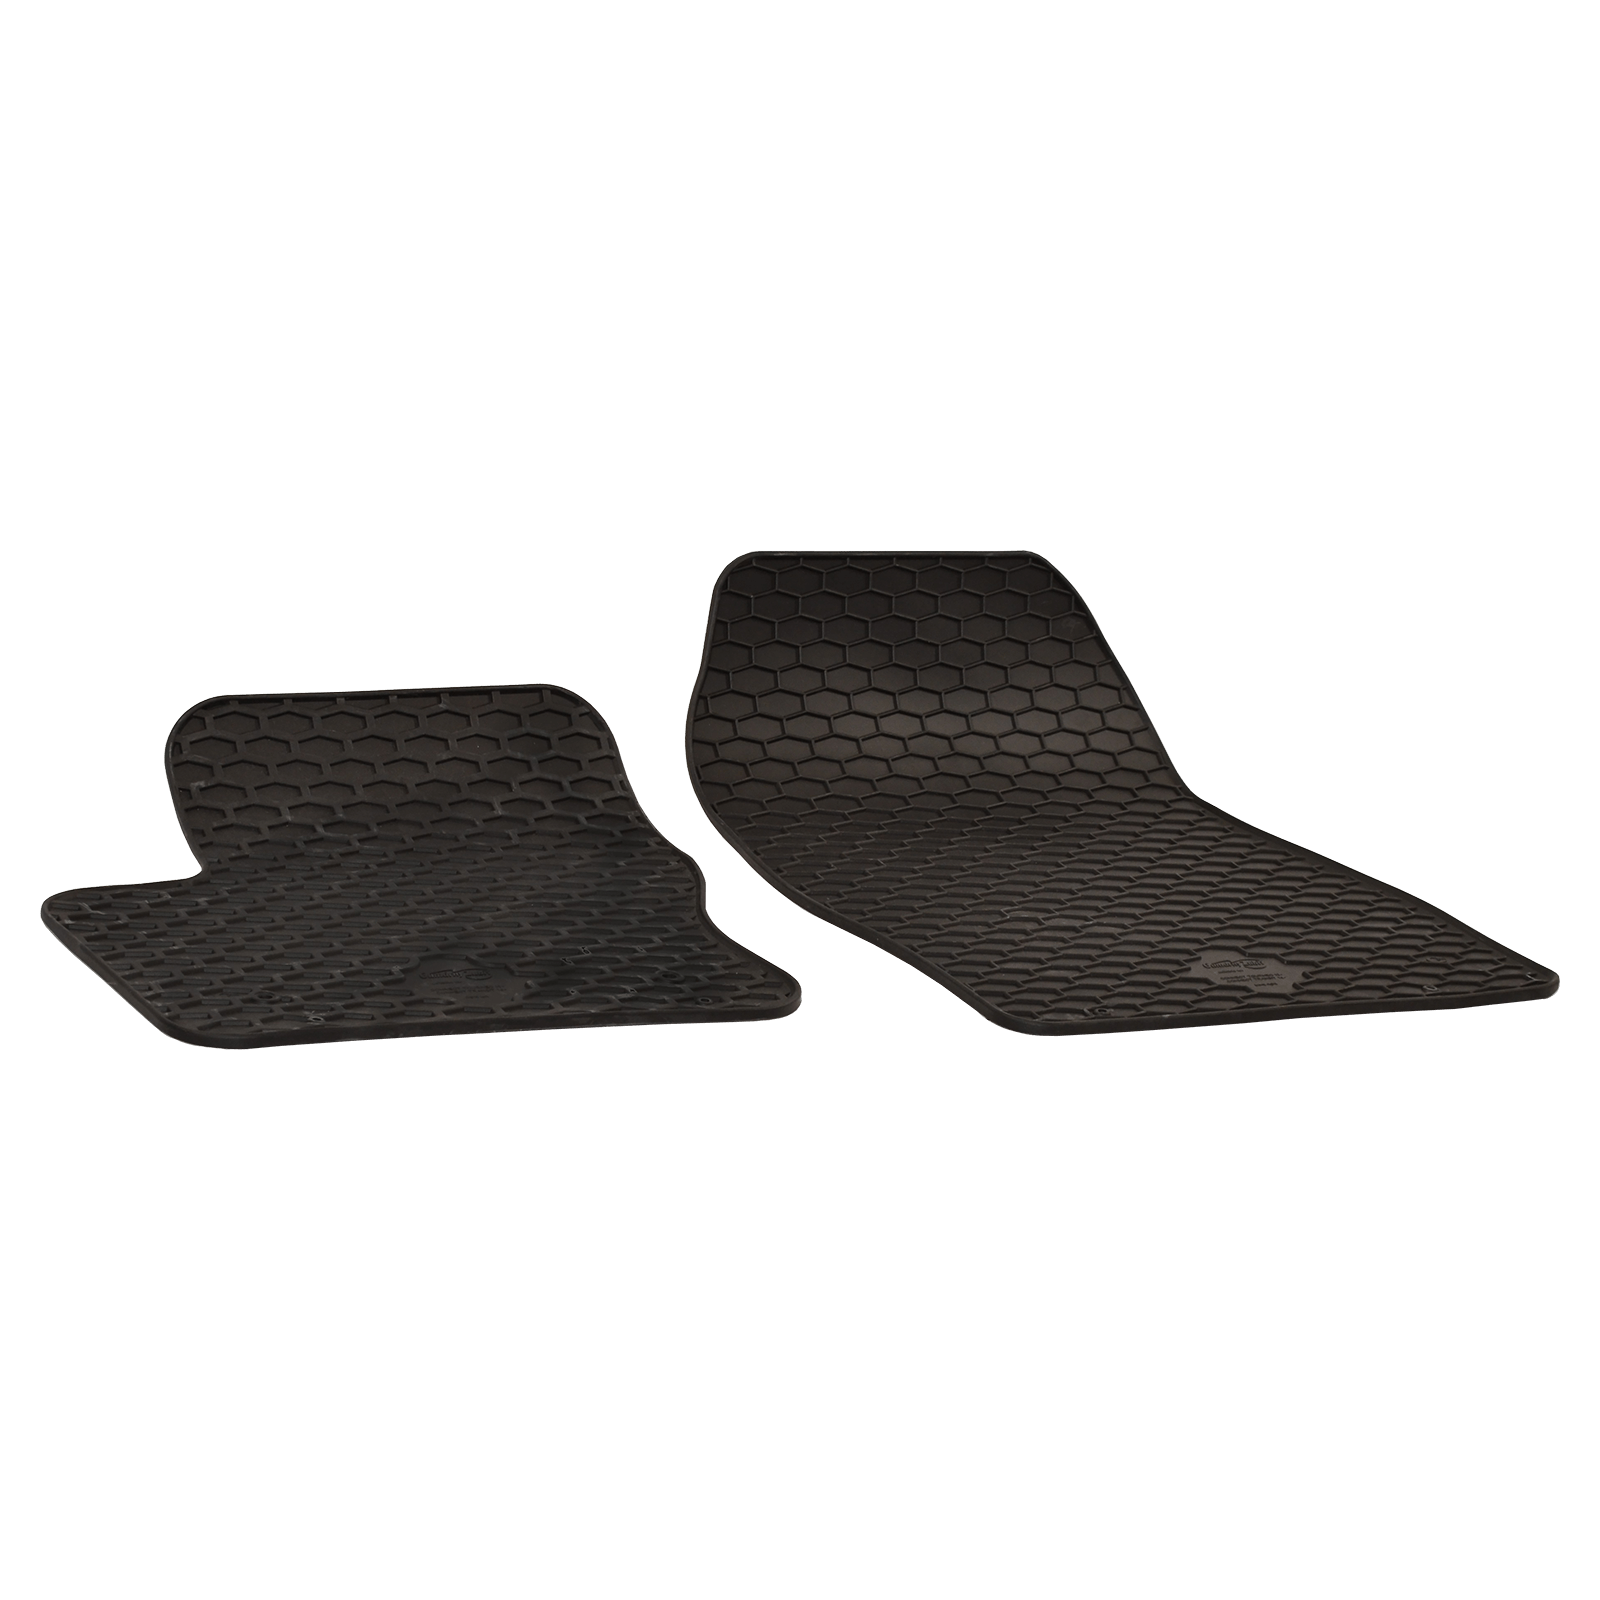 Rubber Floor Mats Black For FORD TOURNEO CONNECT GRAND TOURNEO - Rubber connecting floor mats